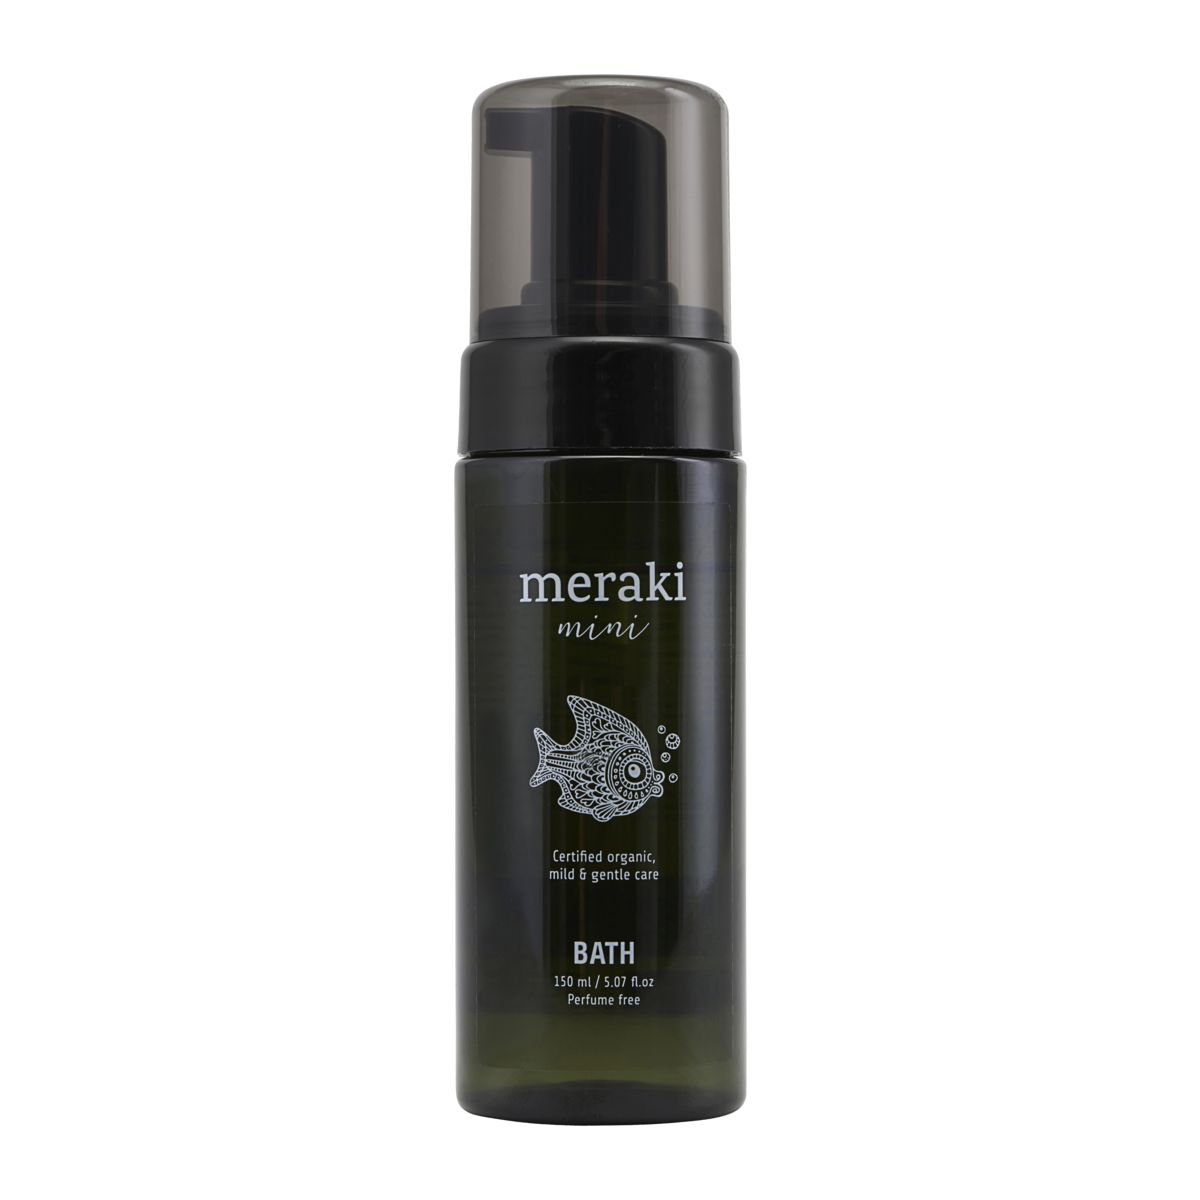 Bath, Meraki mini, 150 ml